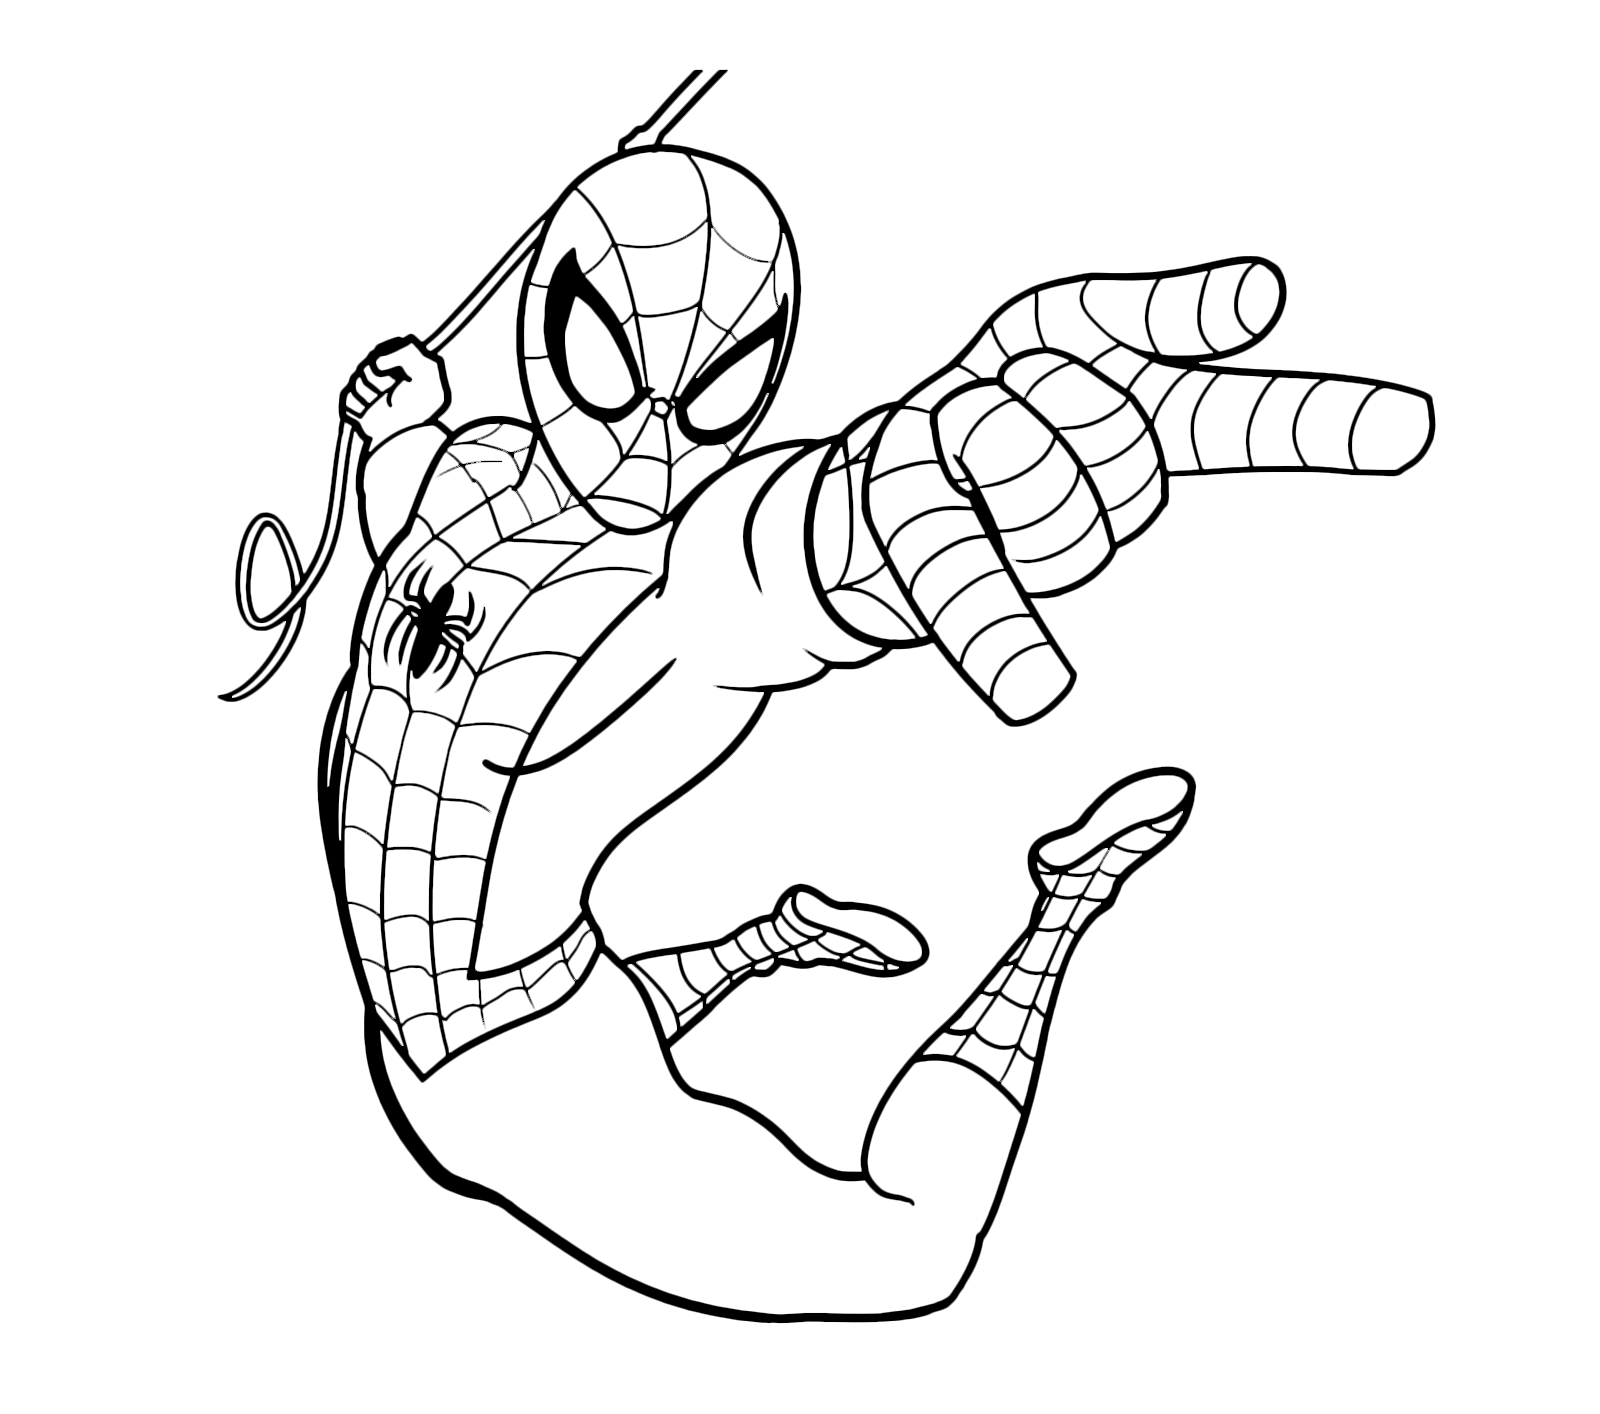 Spiderman spiderman lancia la ragnatela mentre in volo for Spiderman disegno per bambini